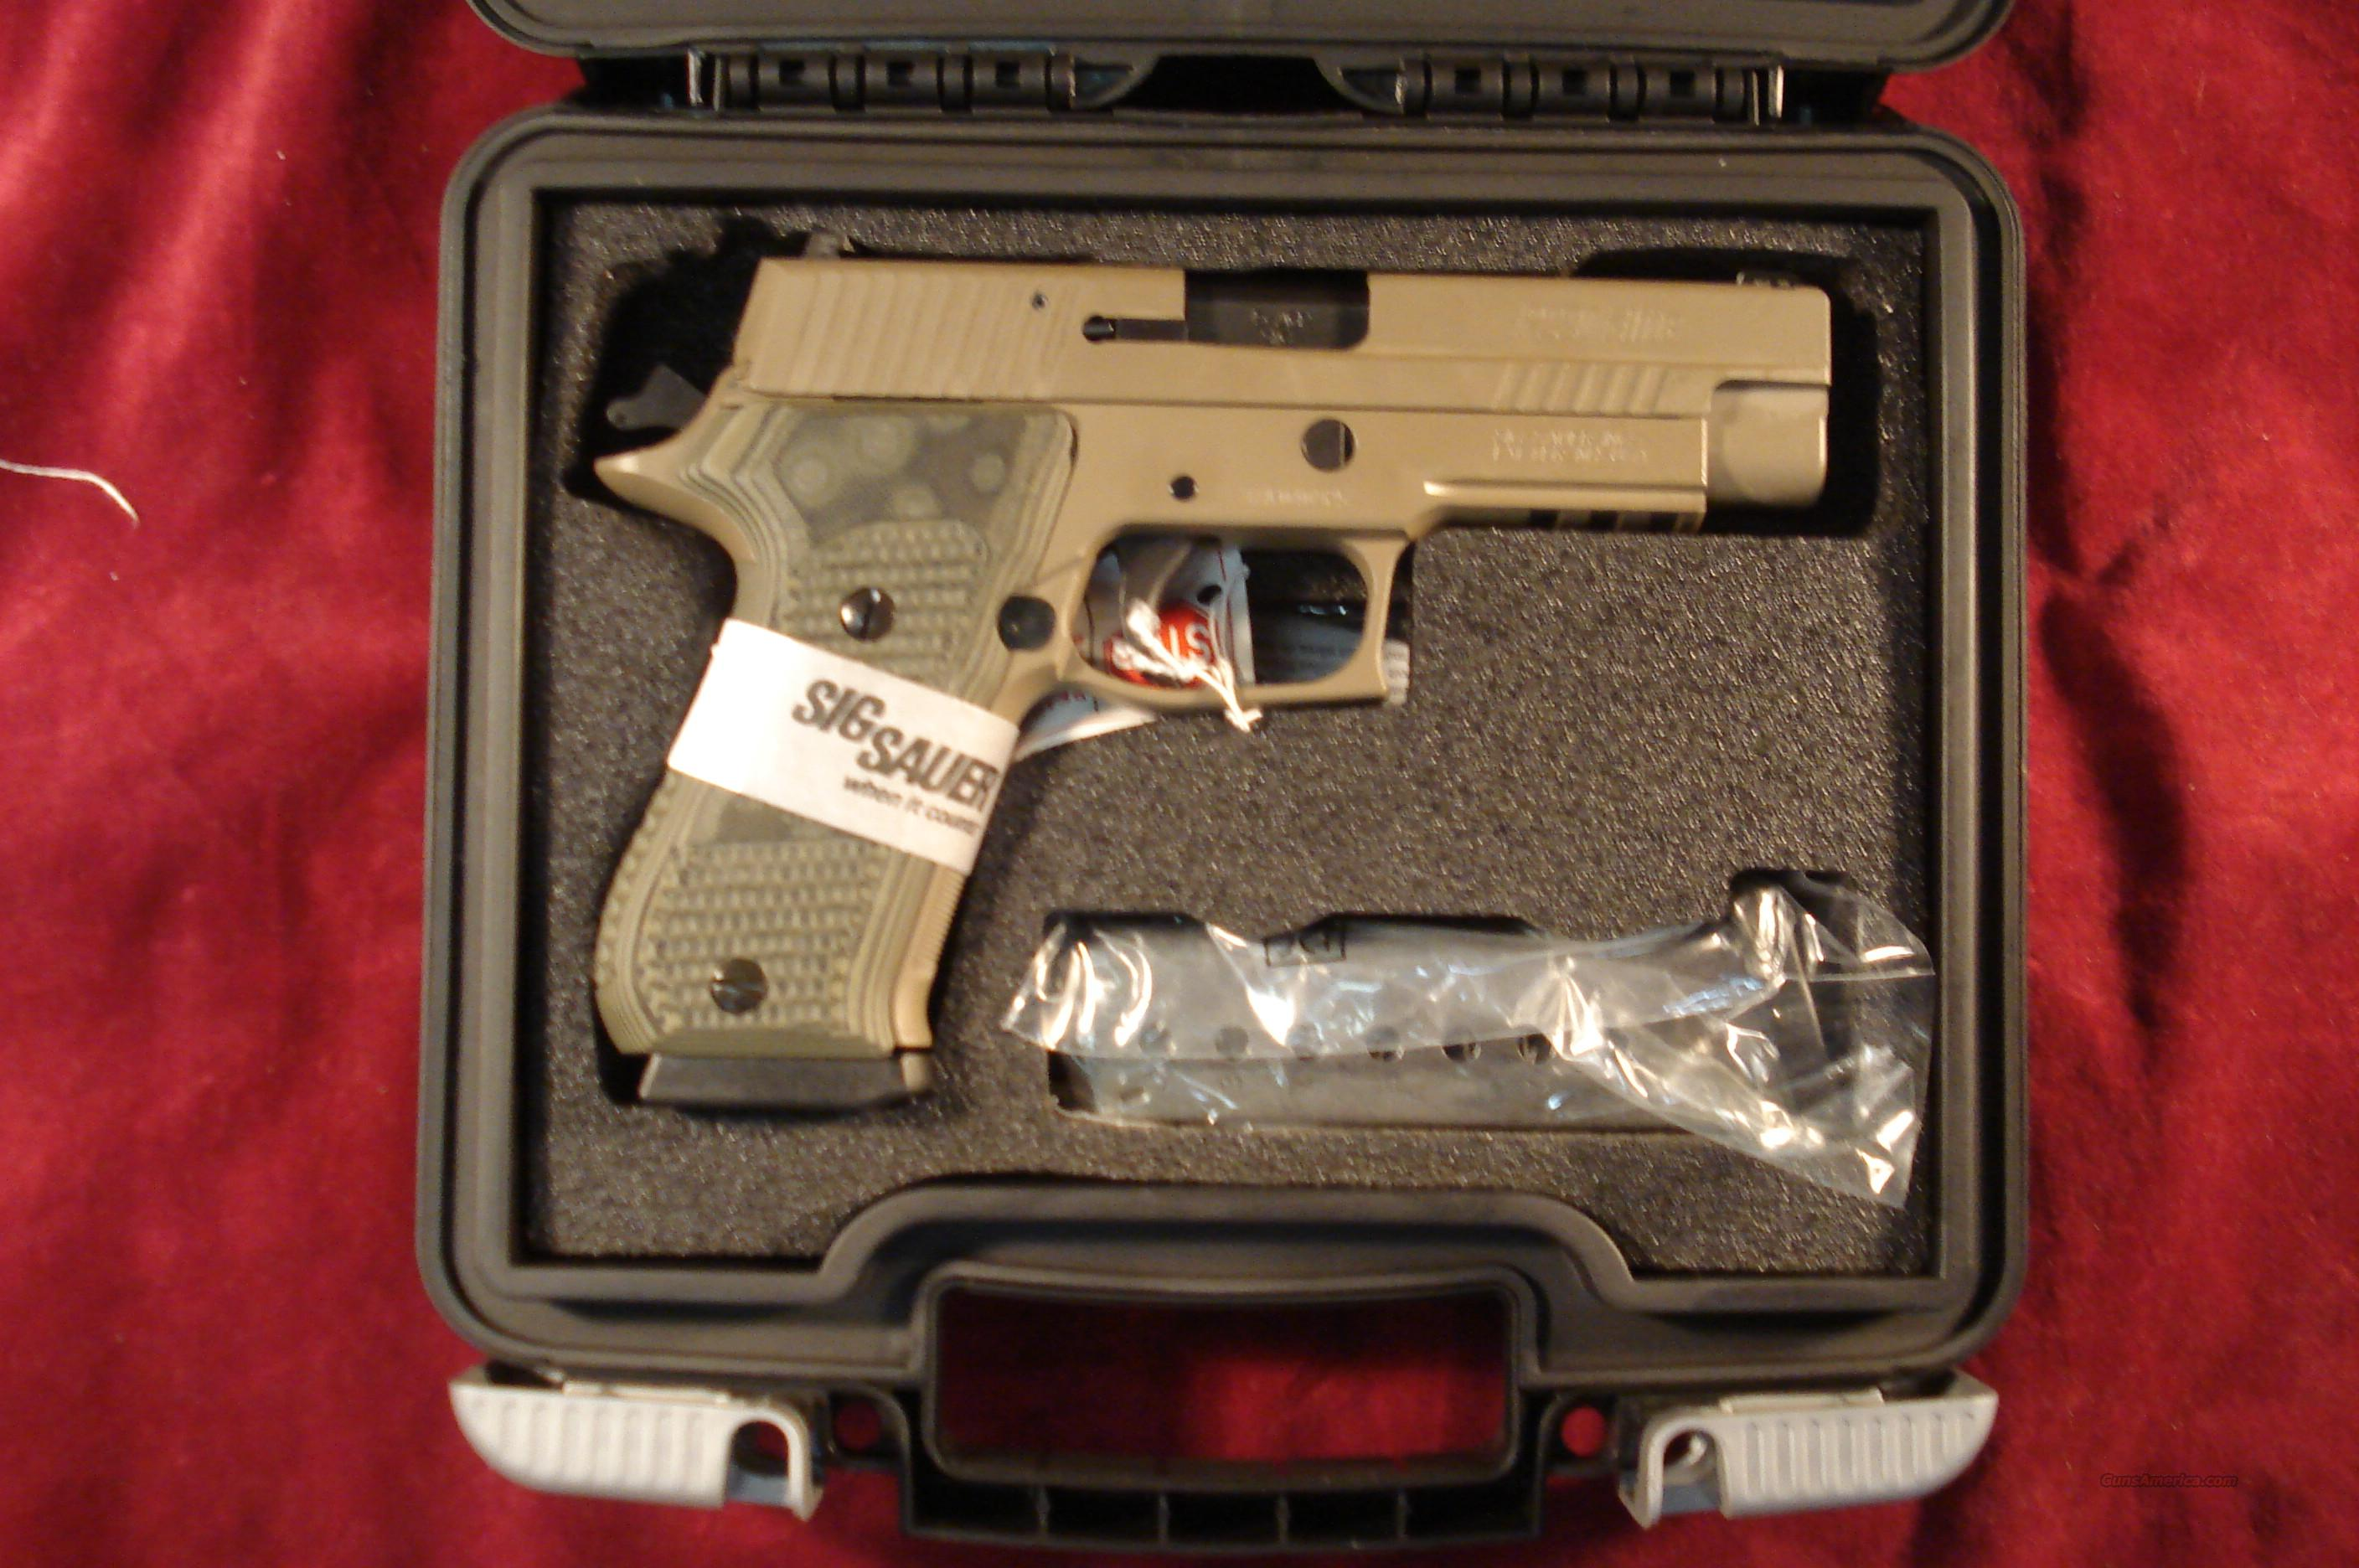 SIG SAUER P220 SCORPION FLAT DARK EARTH 45ACP WITH NIGHT SIGHTS  NEW  Guns > Pistols > Sig - Sauer/Sigarms Pistols > P220